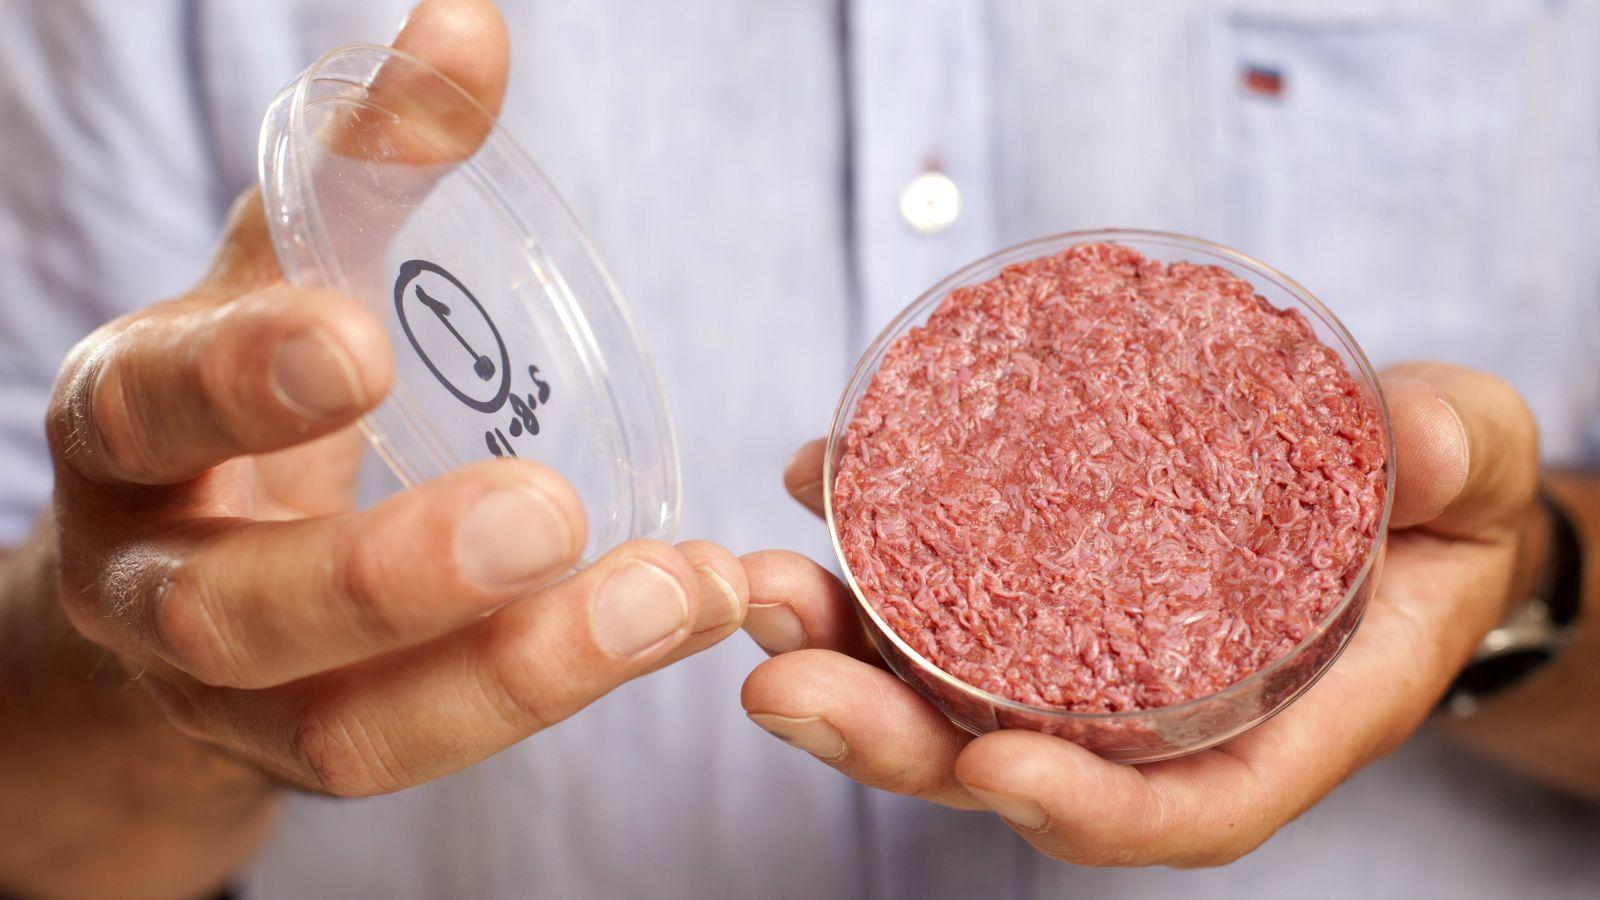 Lab-grown meat by a biotech company Memphis Meats